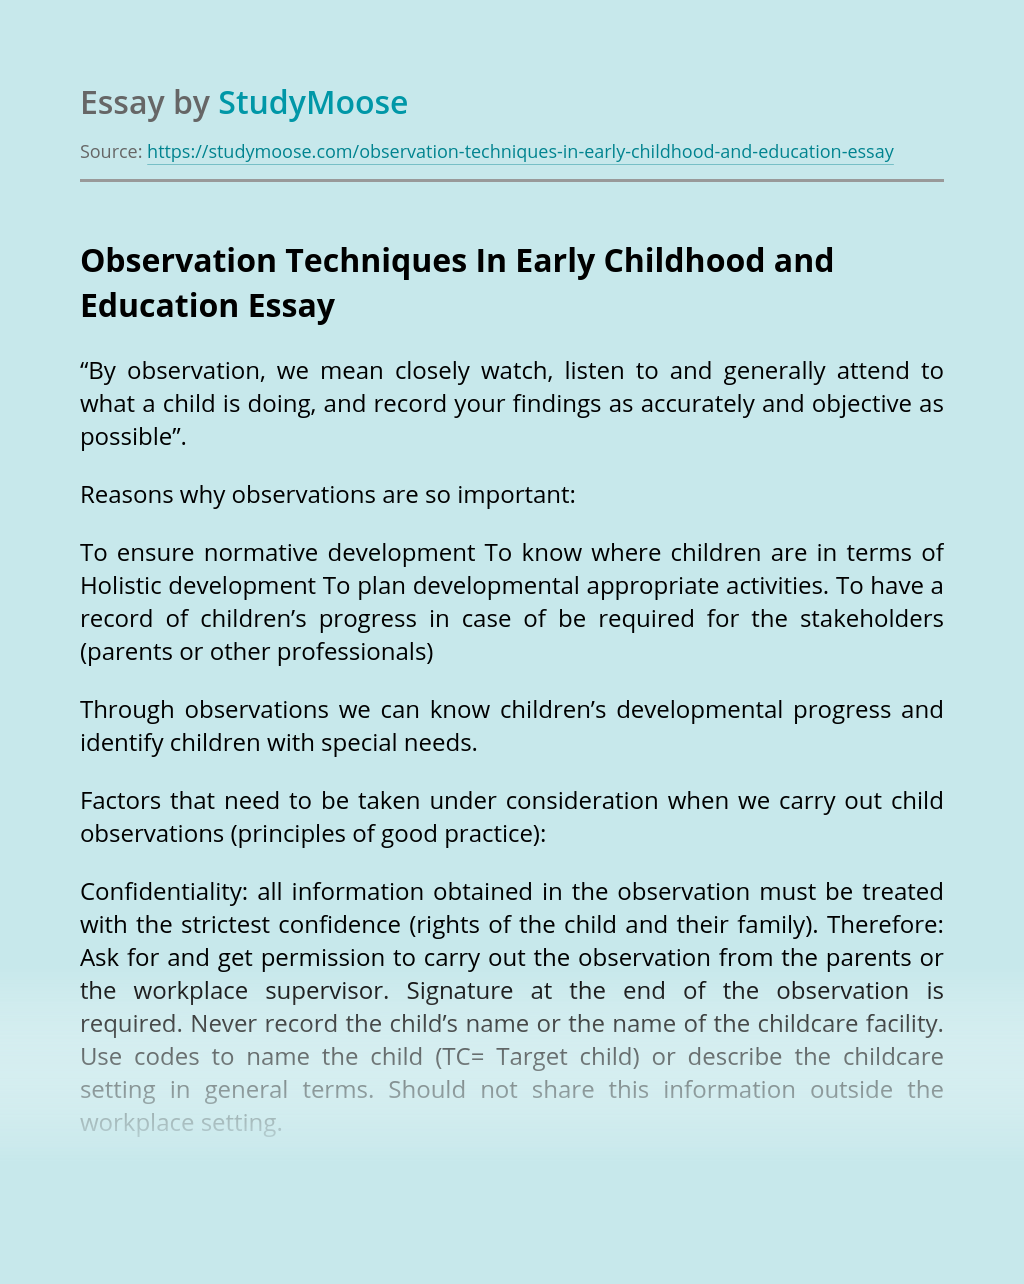 Observation Techniques In Early Childhood and Education